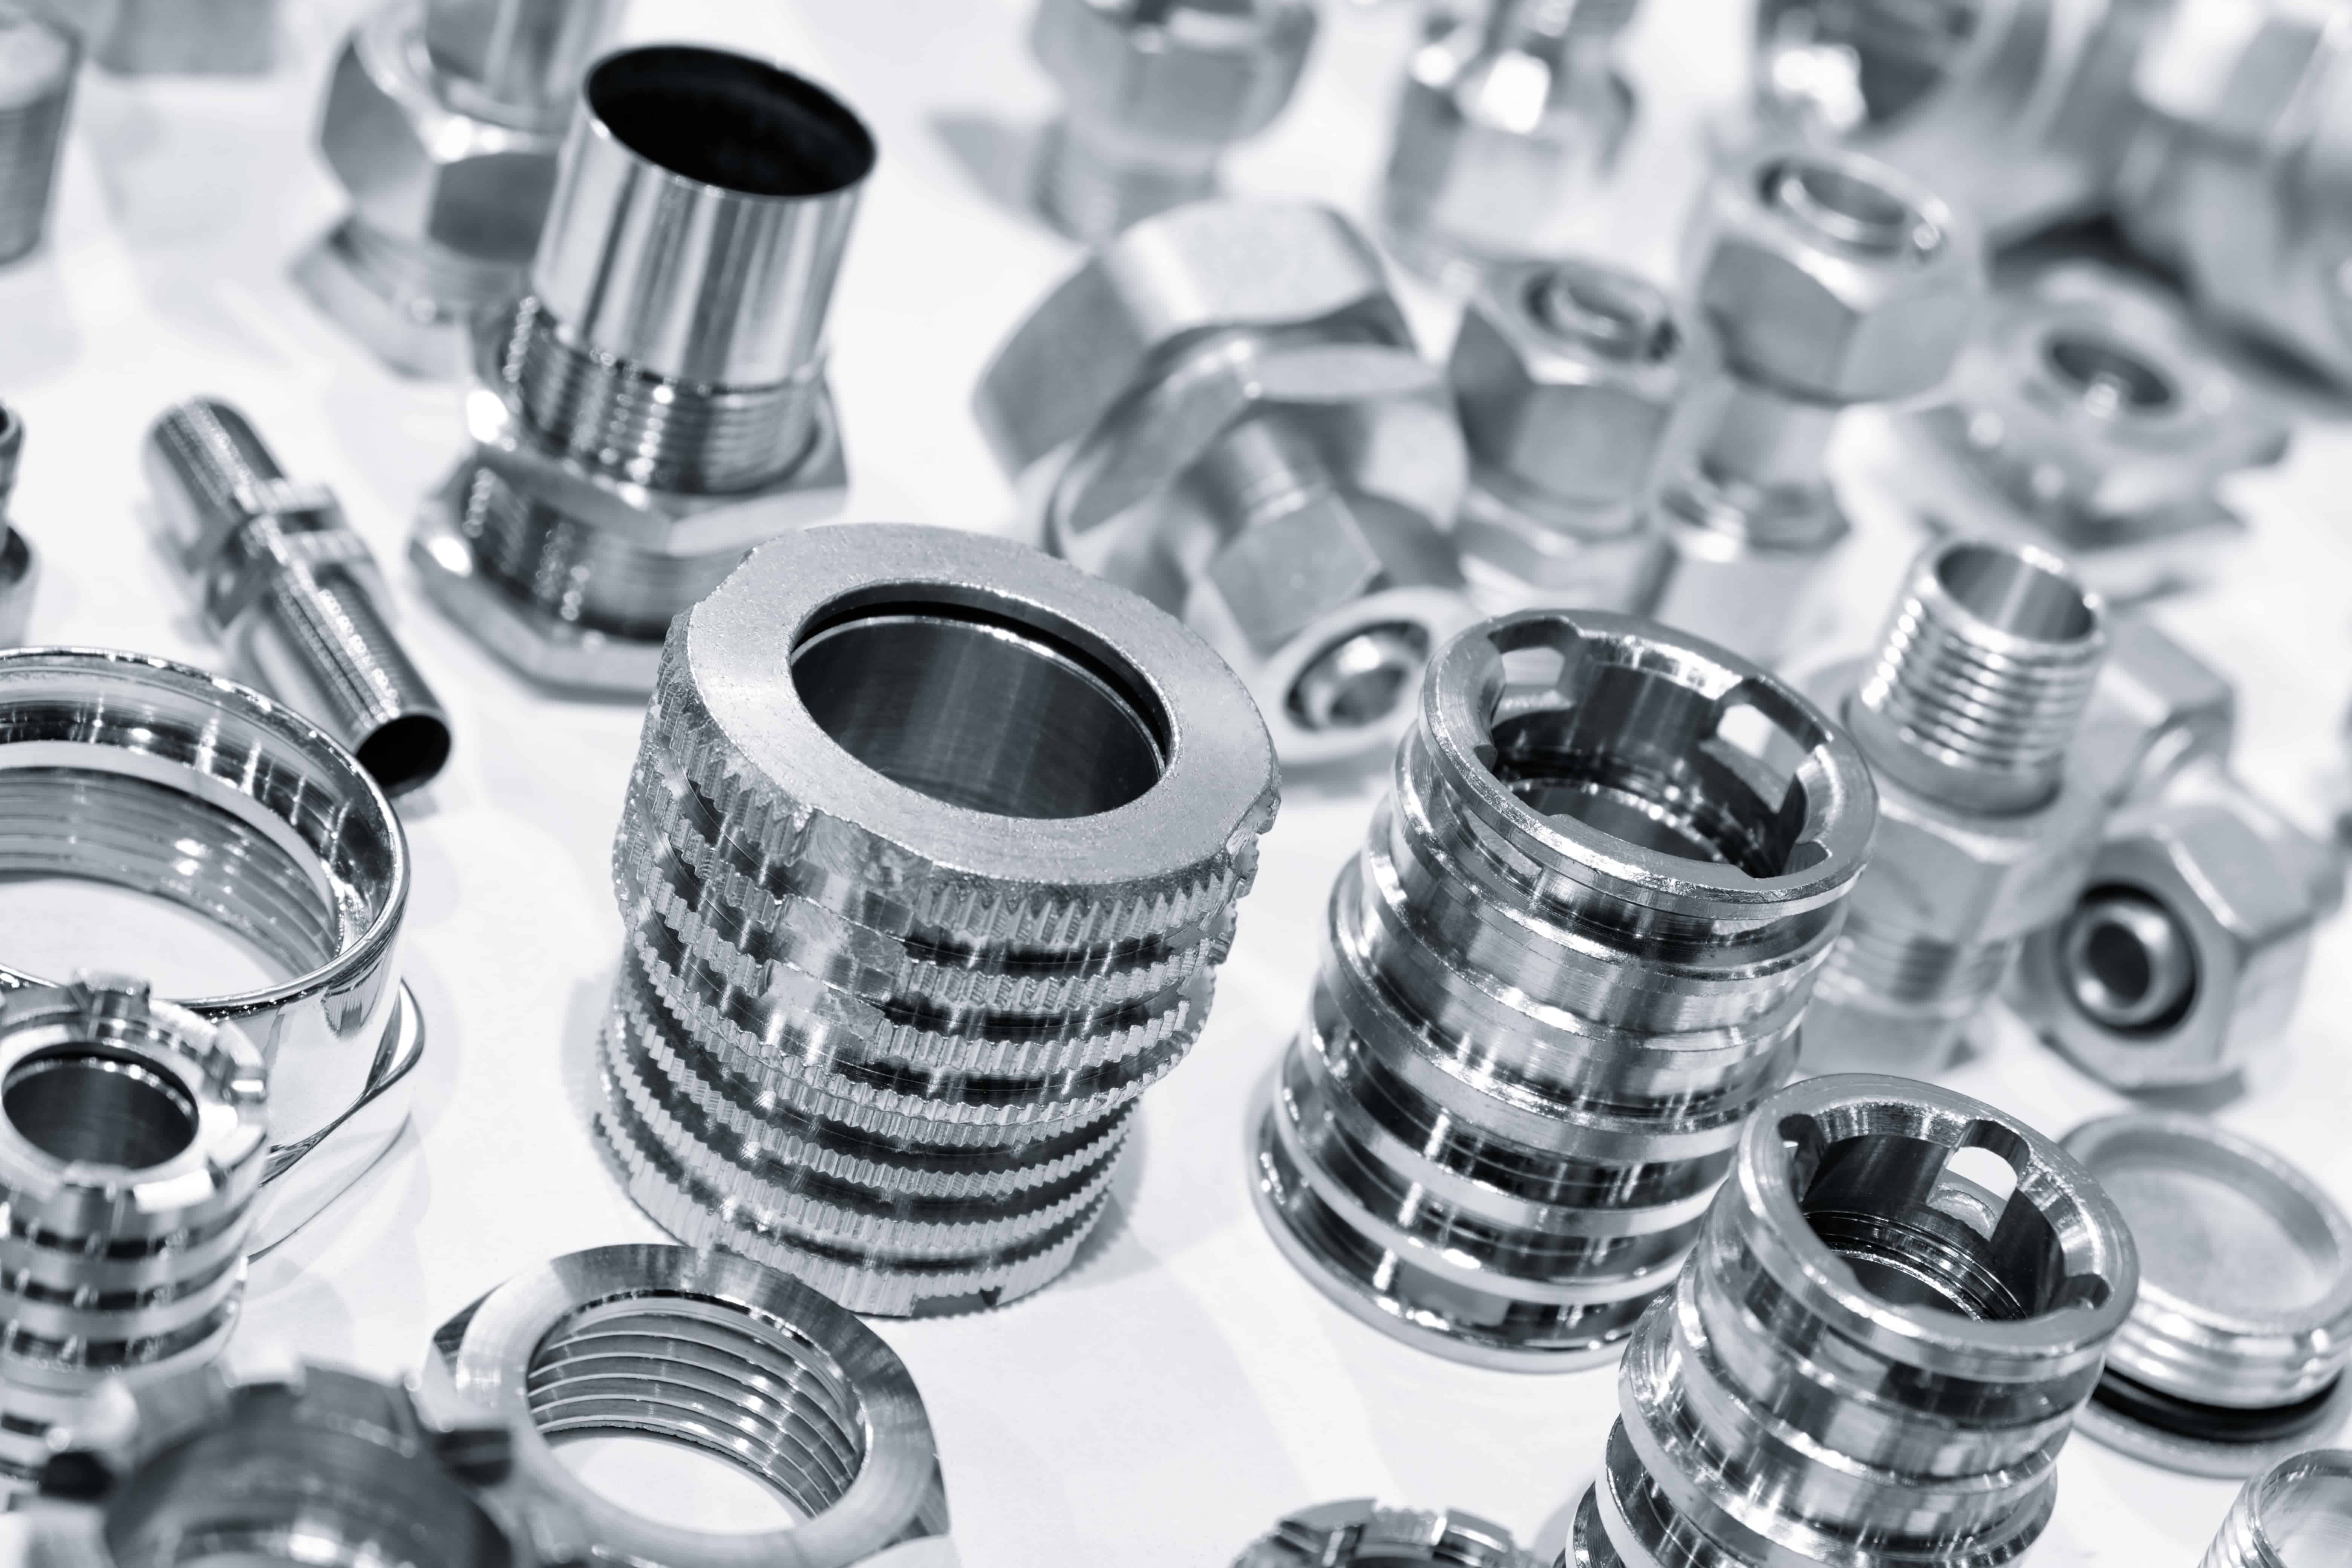 Monitoring and controlling viscosity of ceramic slurries in investment casting